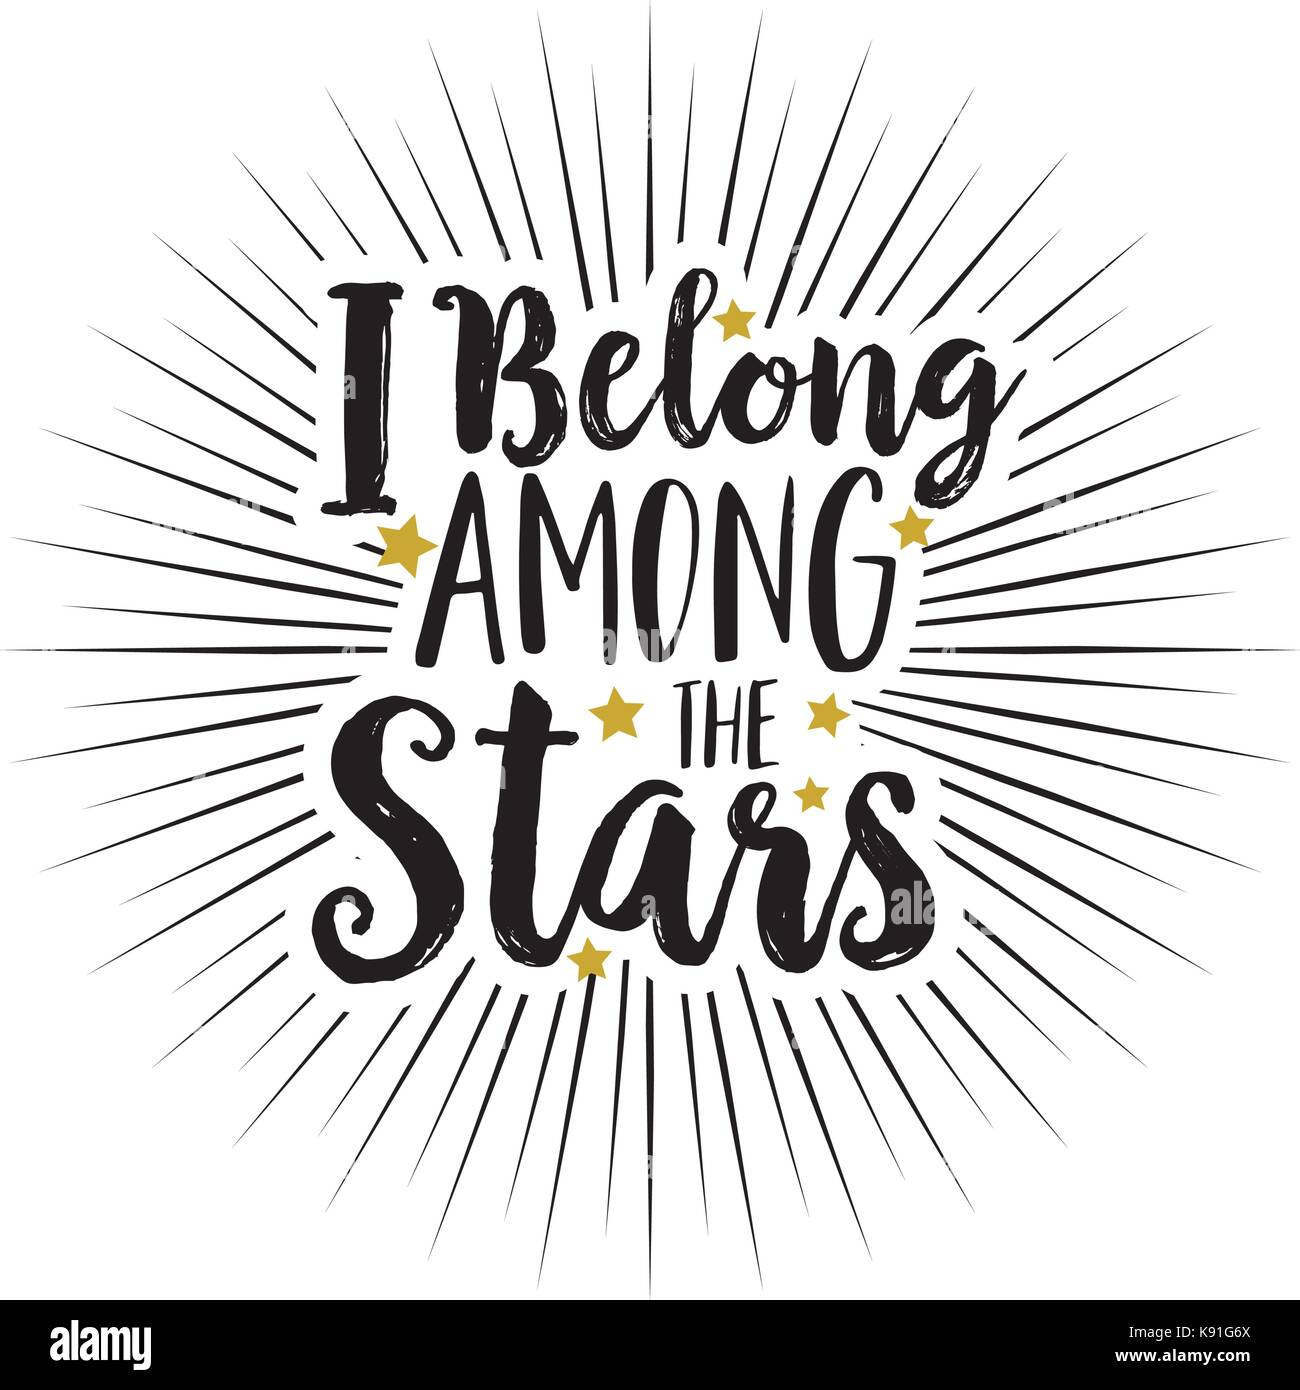 Hand drawn text I belong among the stars white background - Stock Image